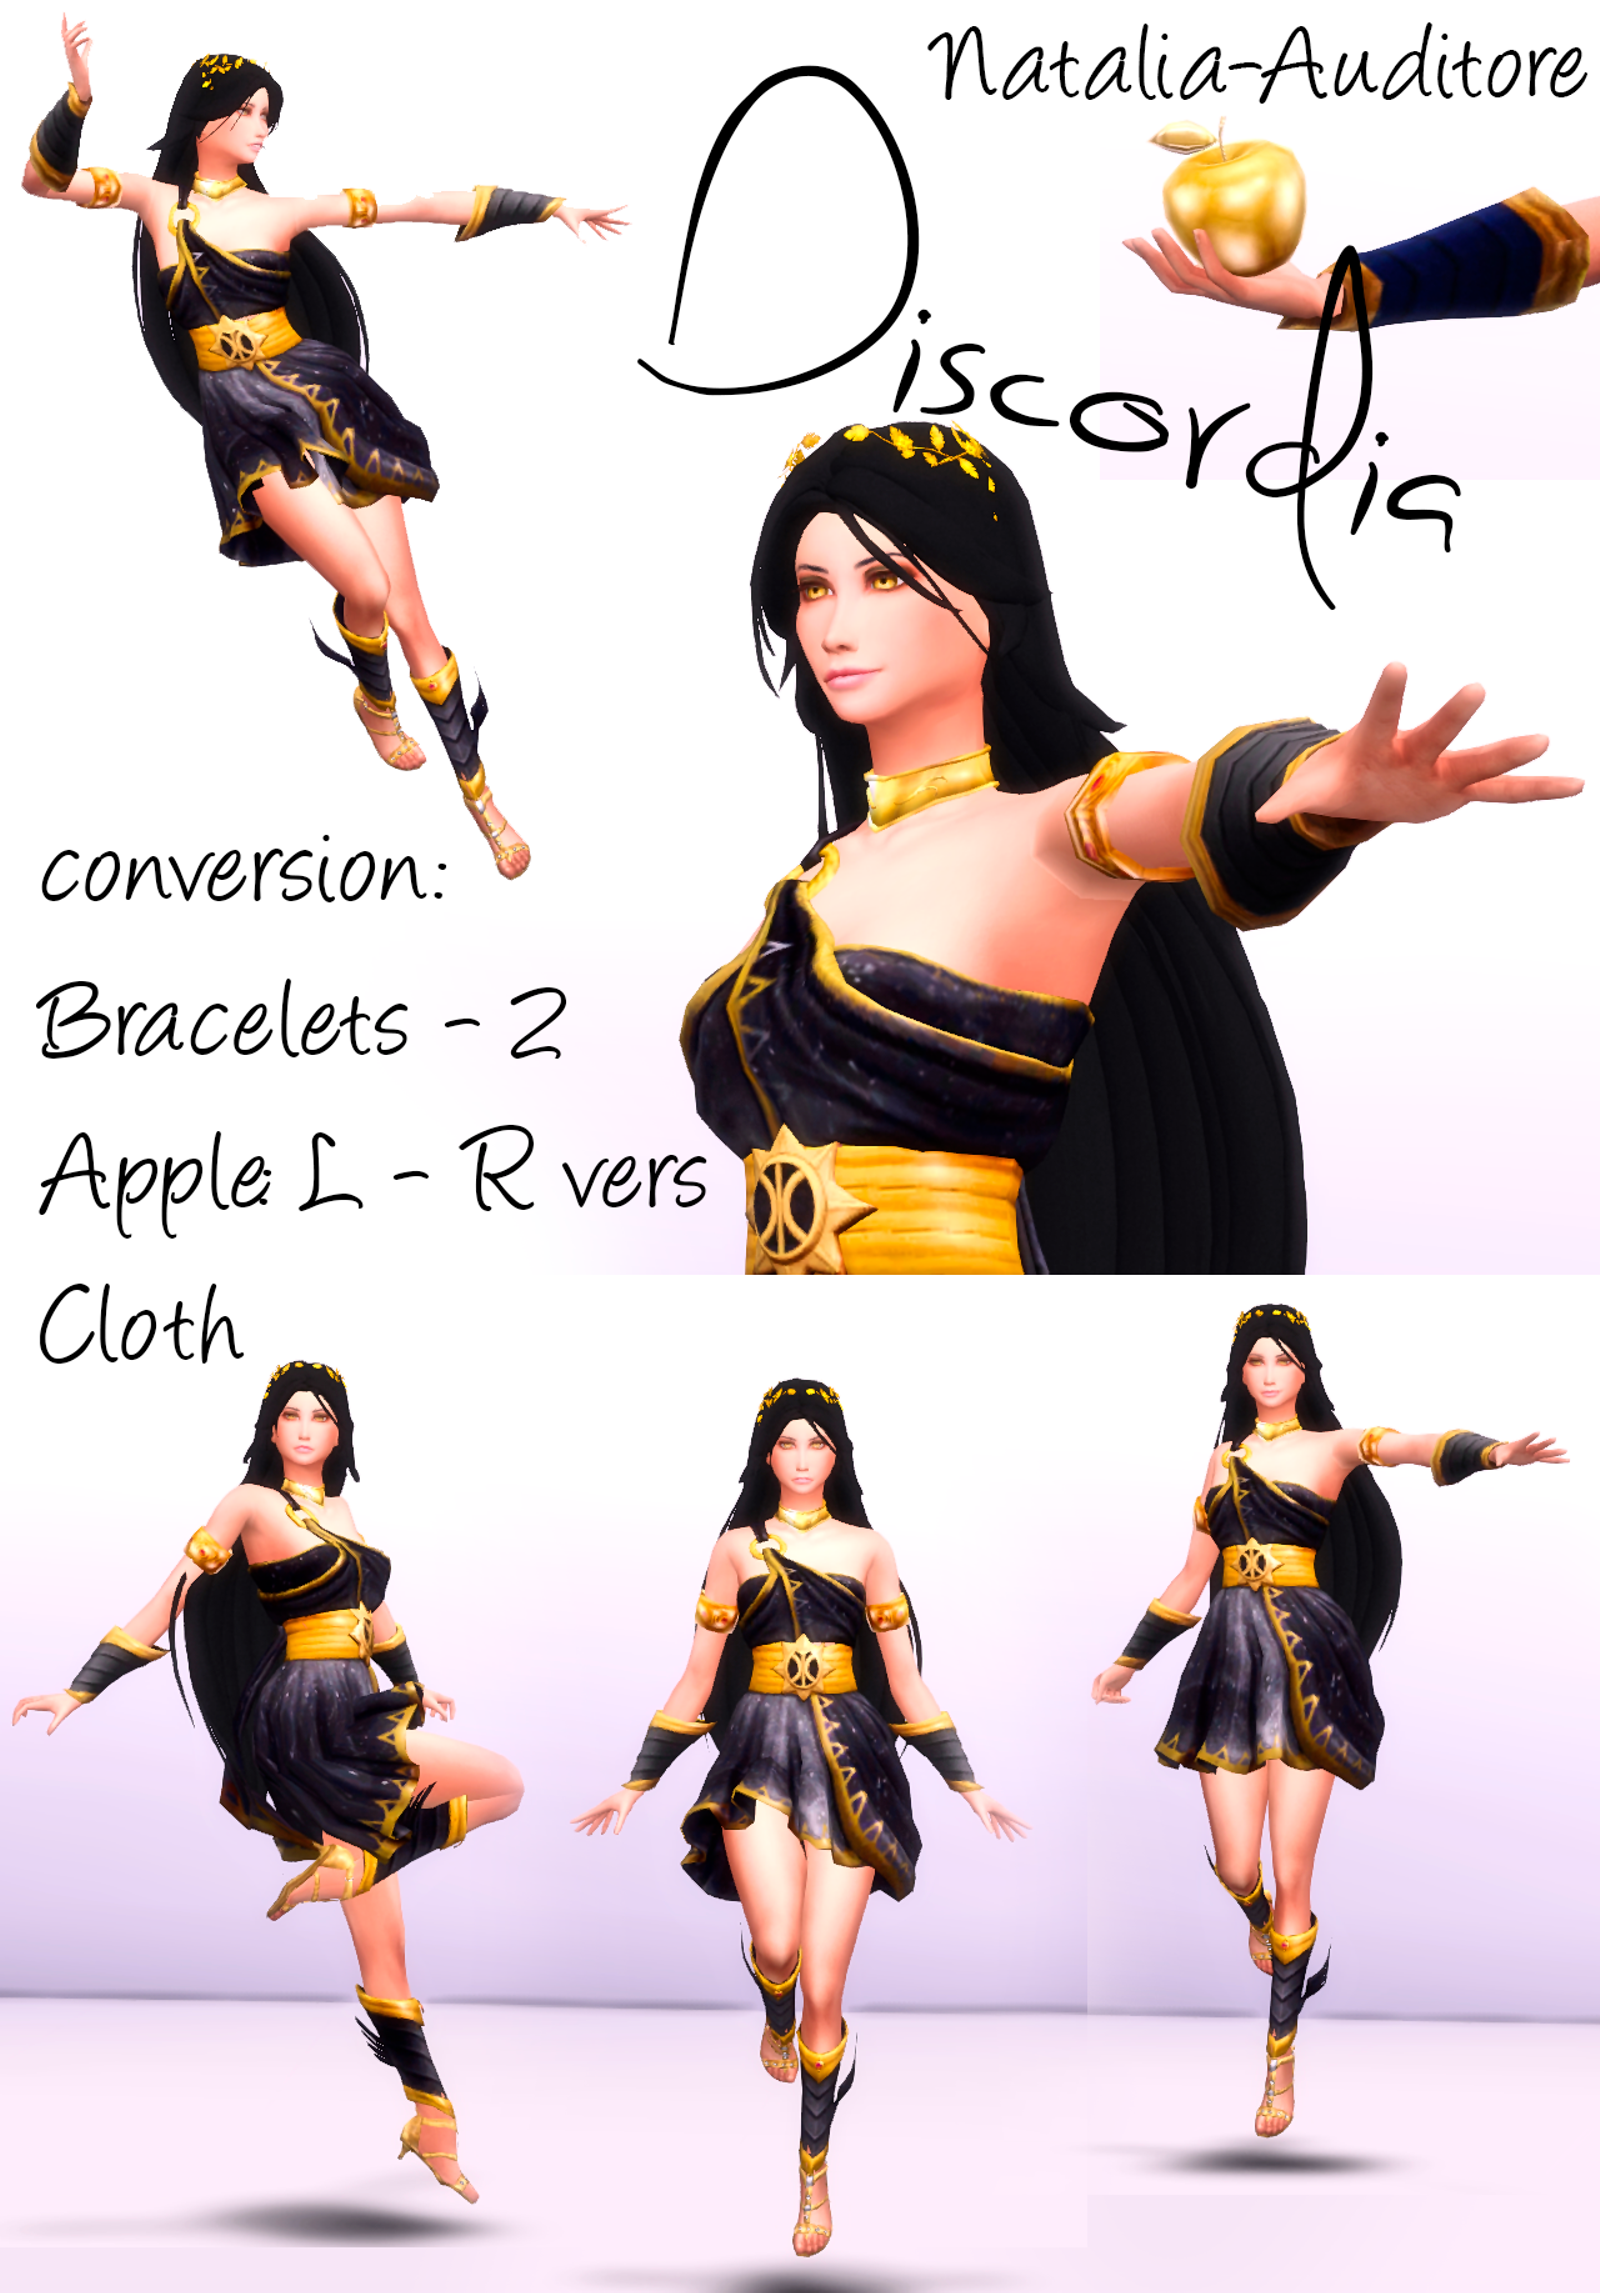 0ca80117a7 Discordia Set  ACCSIMS4  TS4ACC  GREEKSIMS4  hairsims4  ts4hair   greekhairsims4  greecesims4  greekclothsims4